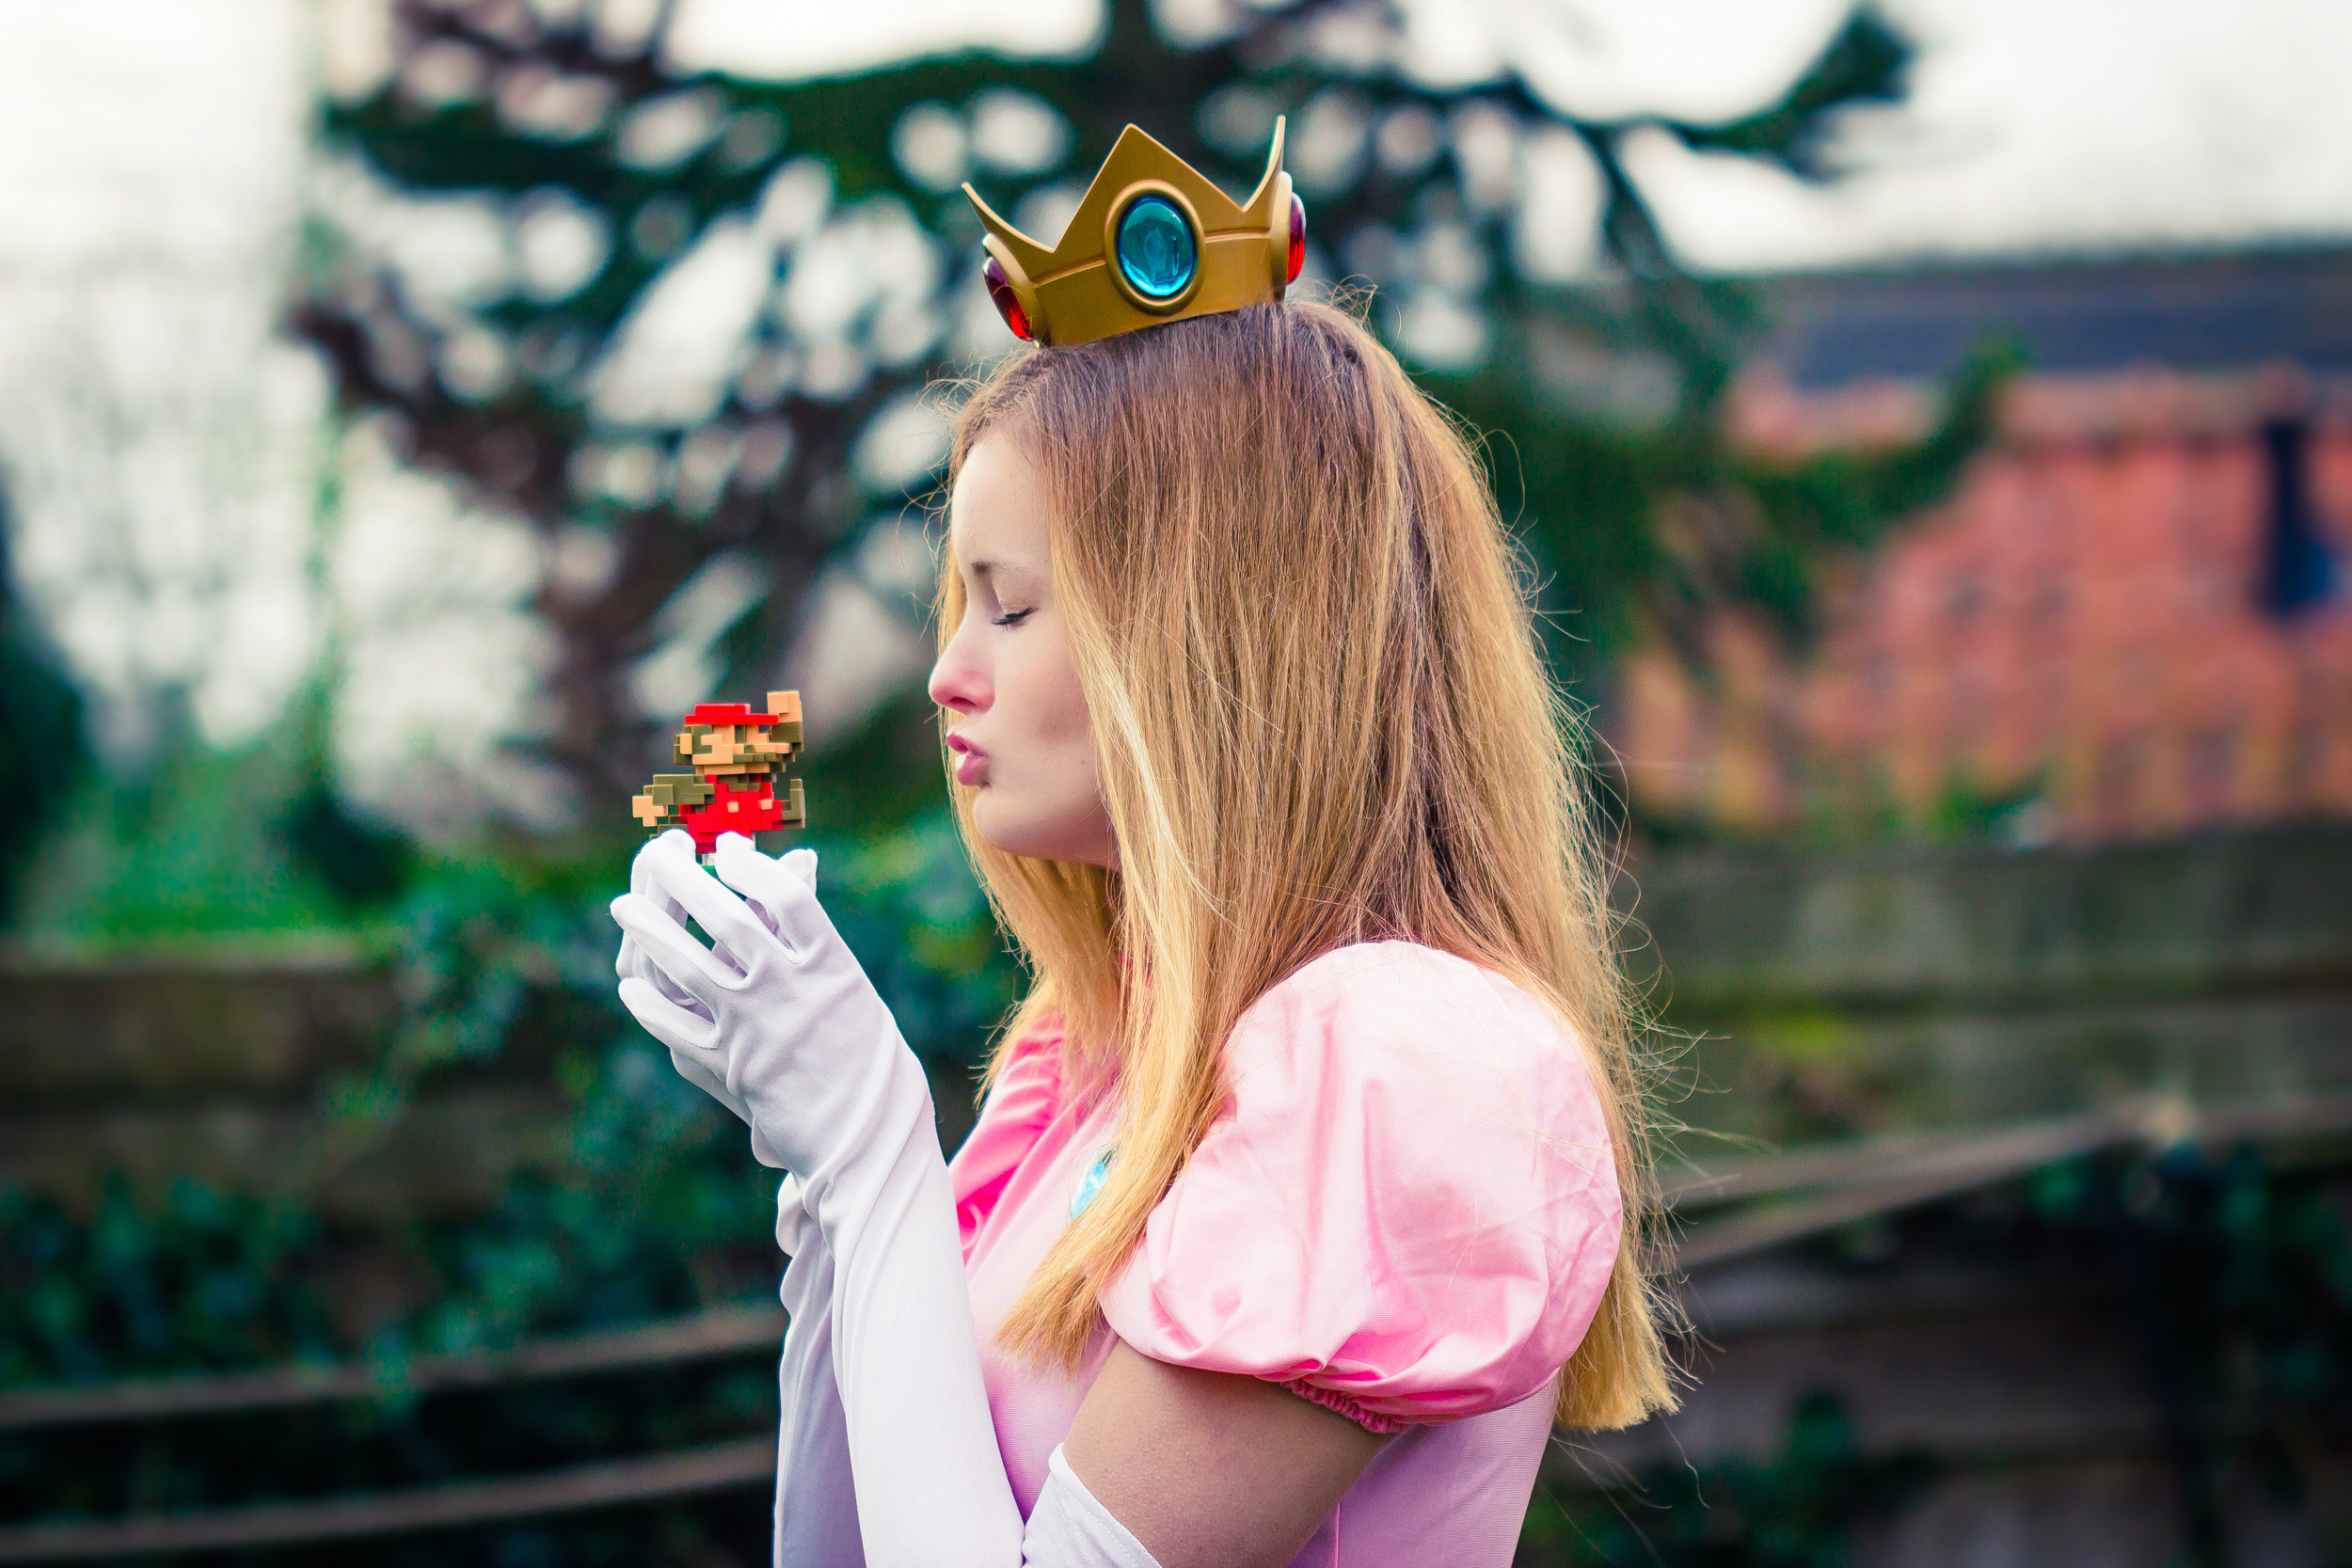 Princess Peach Photoshoot - Creative